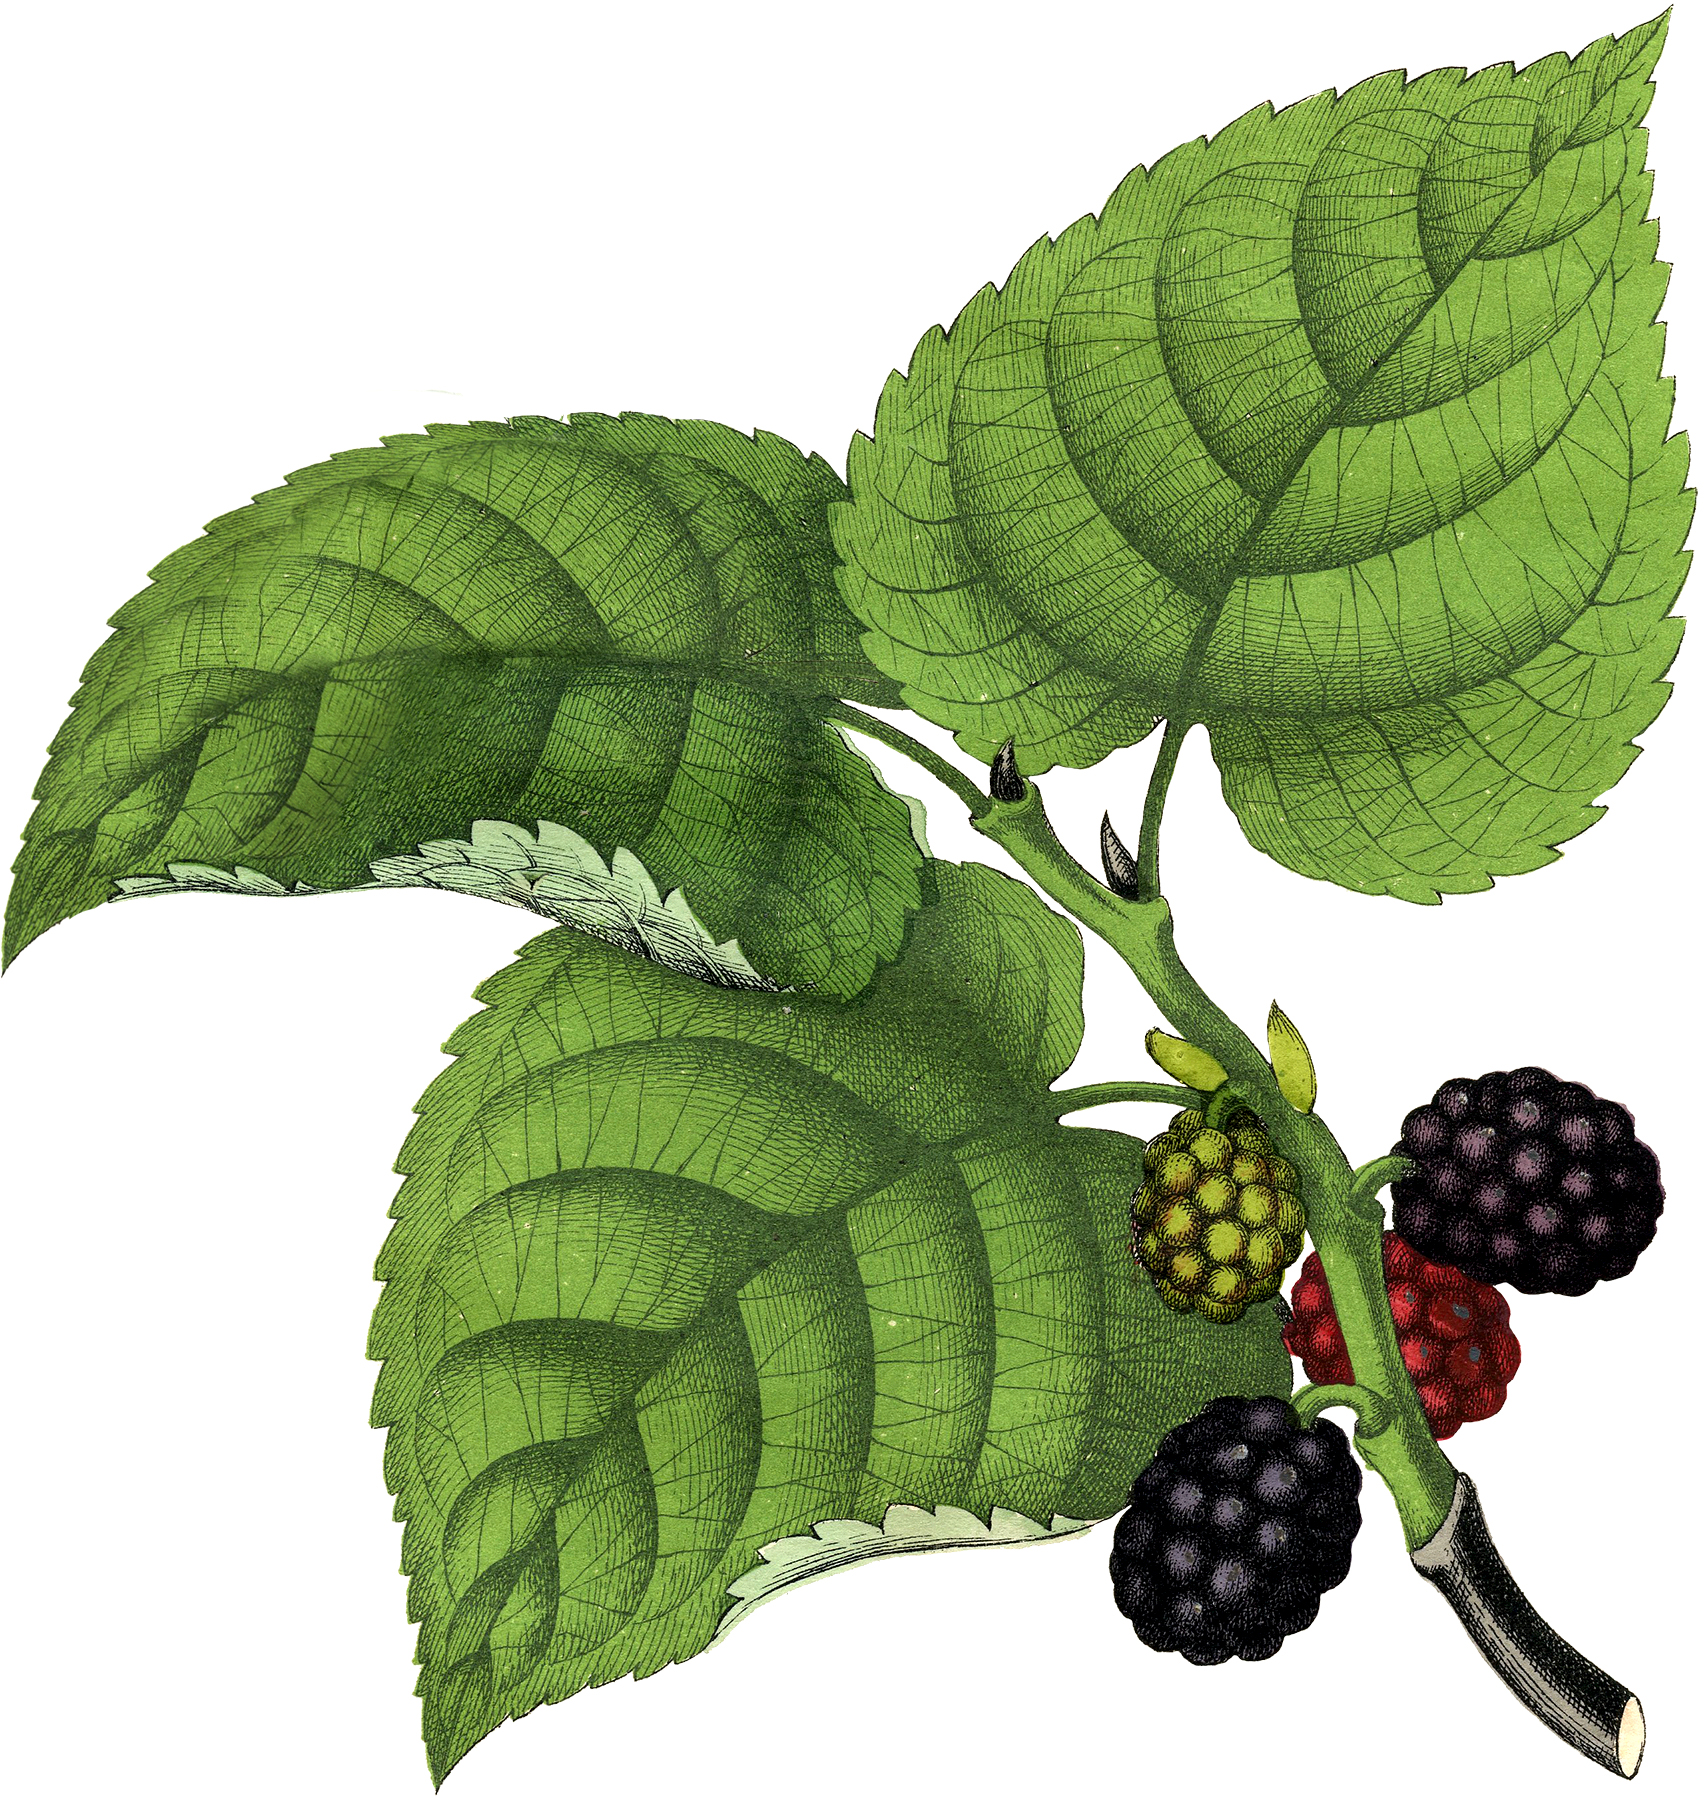 Vintage Mulberries Clip Art The Graphics Fairy